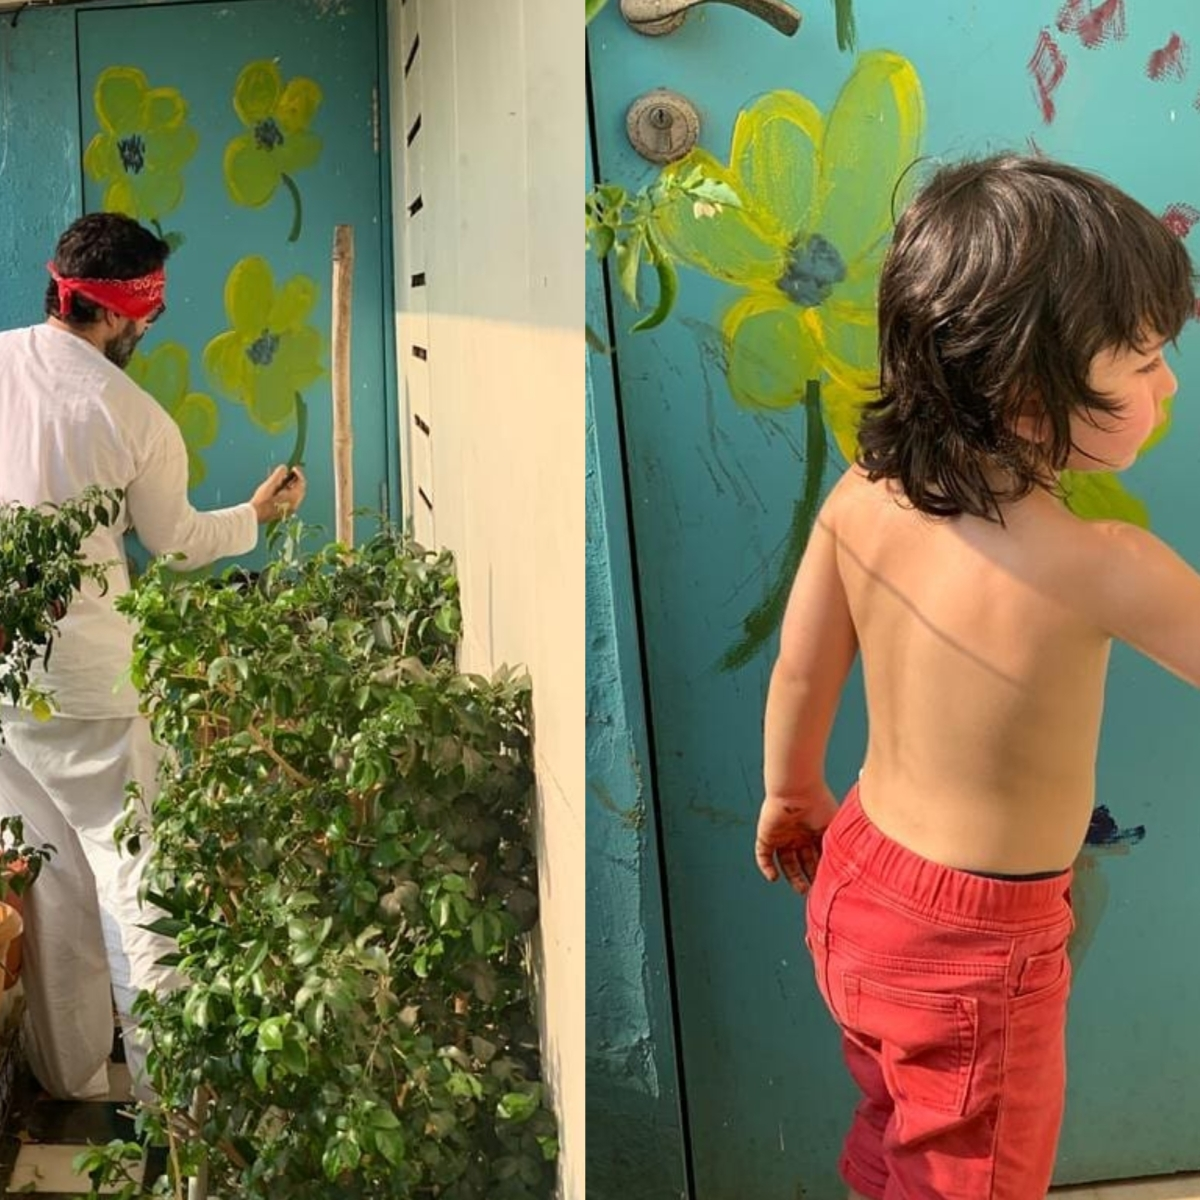 Kareena Kapoor receives special 'quarantine gift' from husband Saif, Taimur channels his inner Picasso